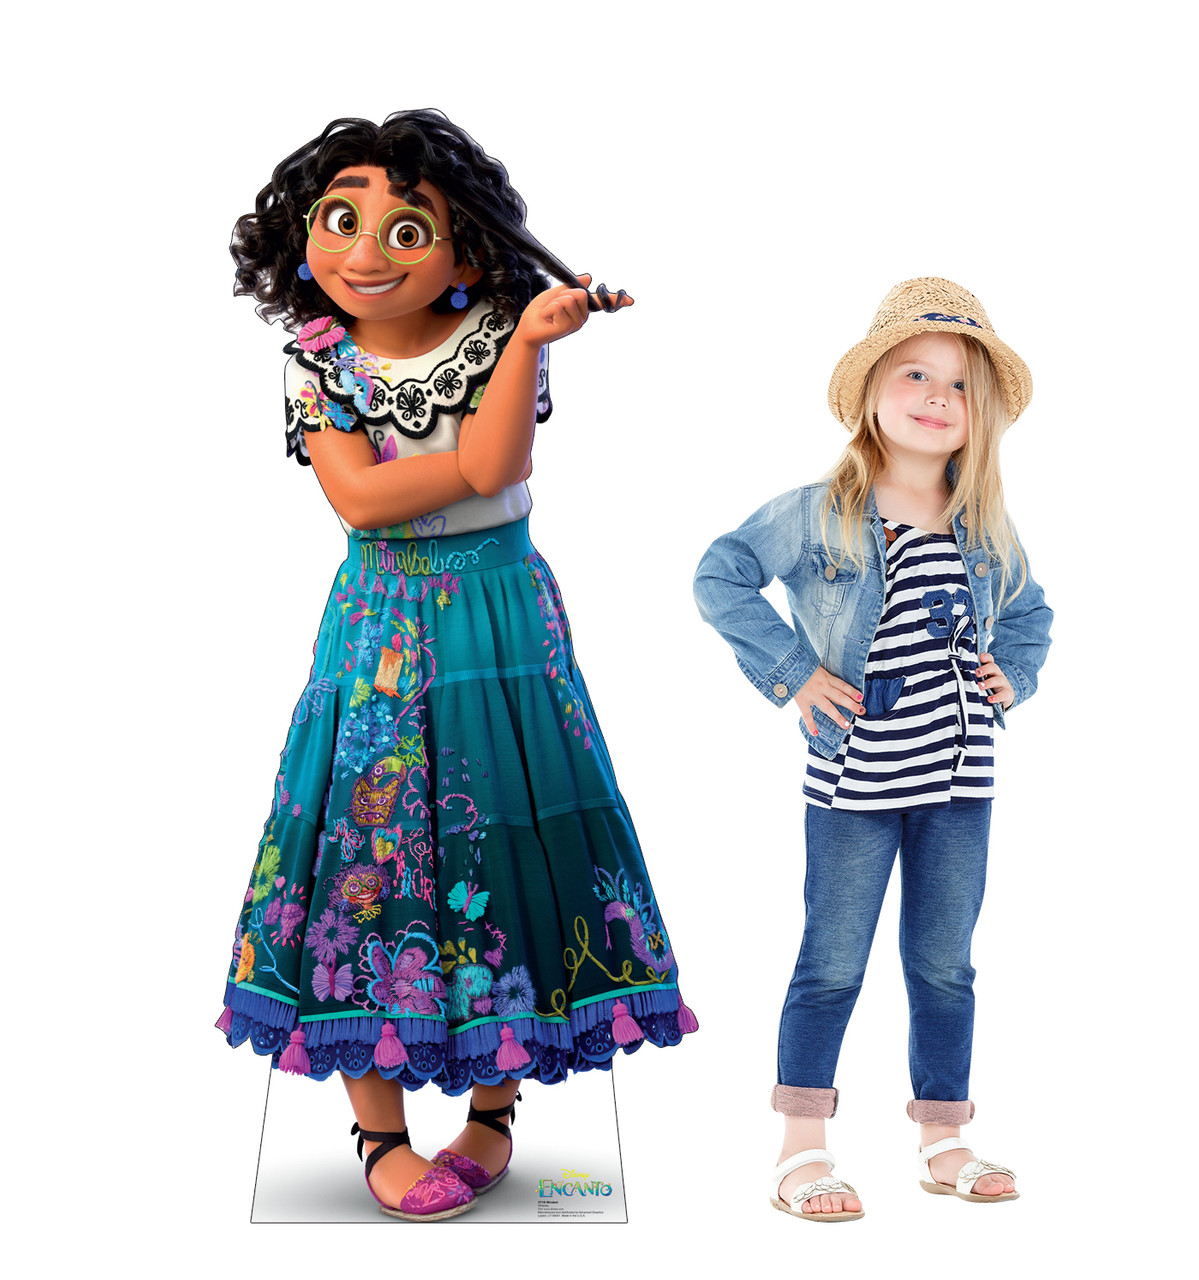 Life-size cardboard standee of Mirabel from the Disney's movie Encanto with model.